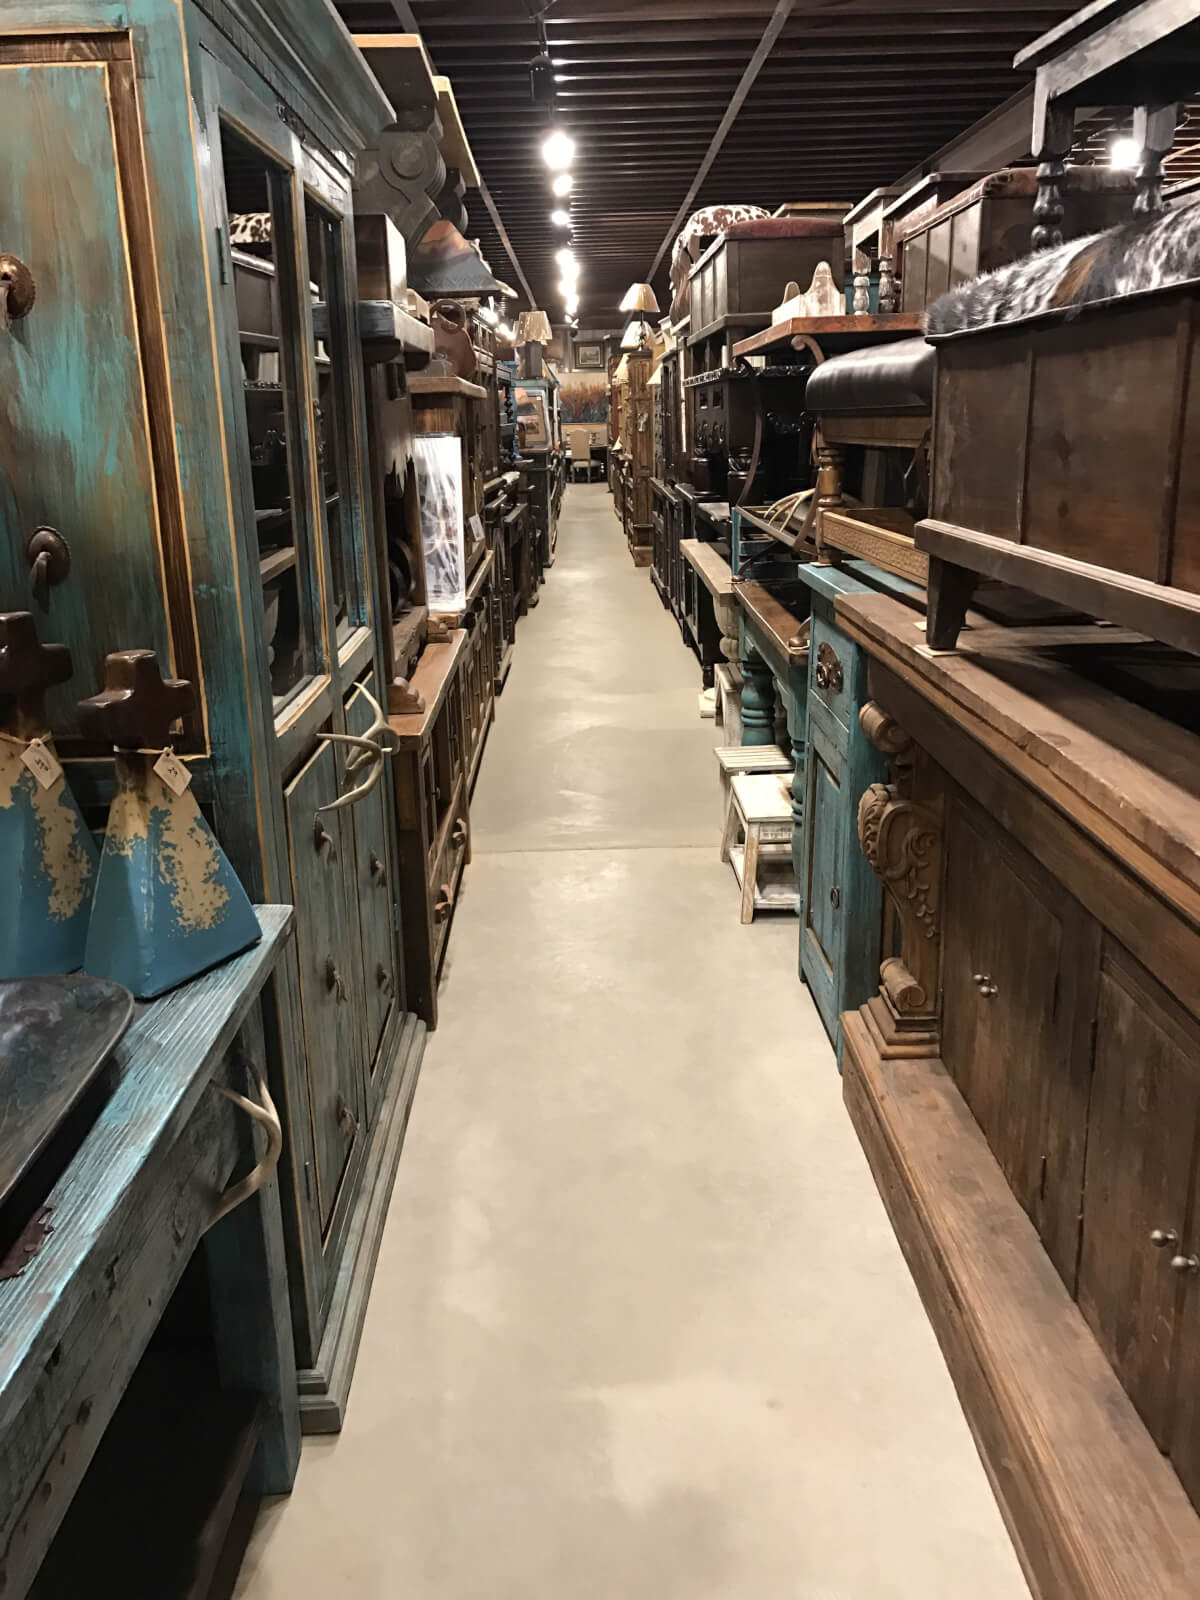 Although Coyote Candle Co. Has Gotten Too Busy For Interior Design  Off Site, They Do Help With Home Furnishing And Decor On Site.